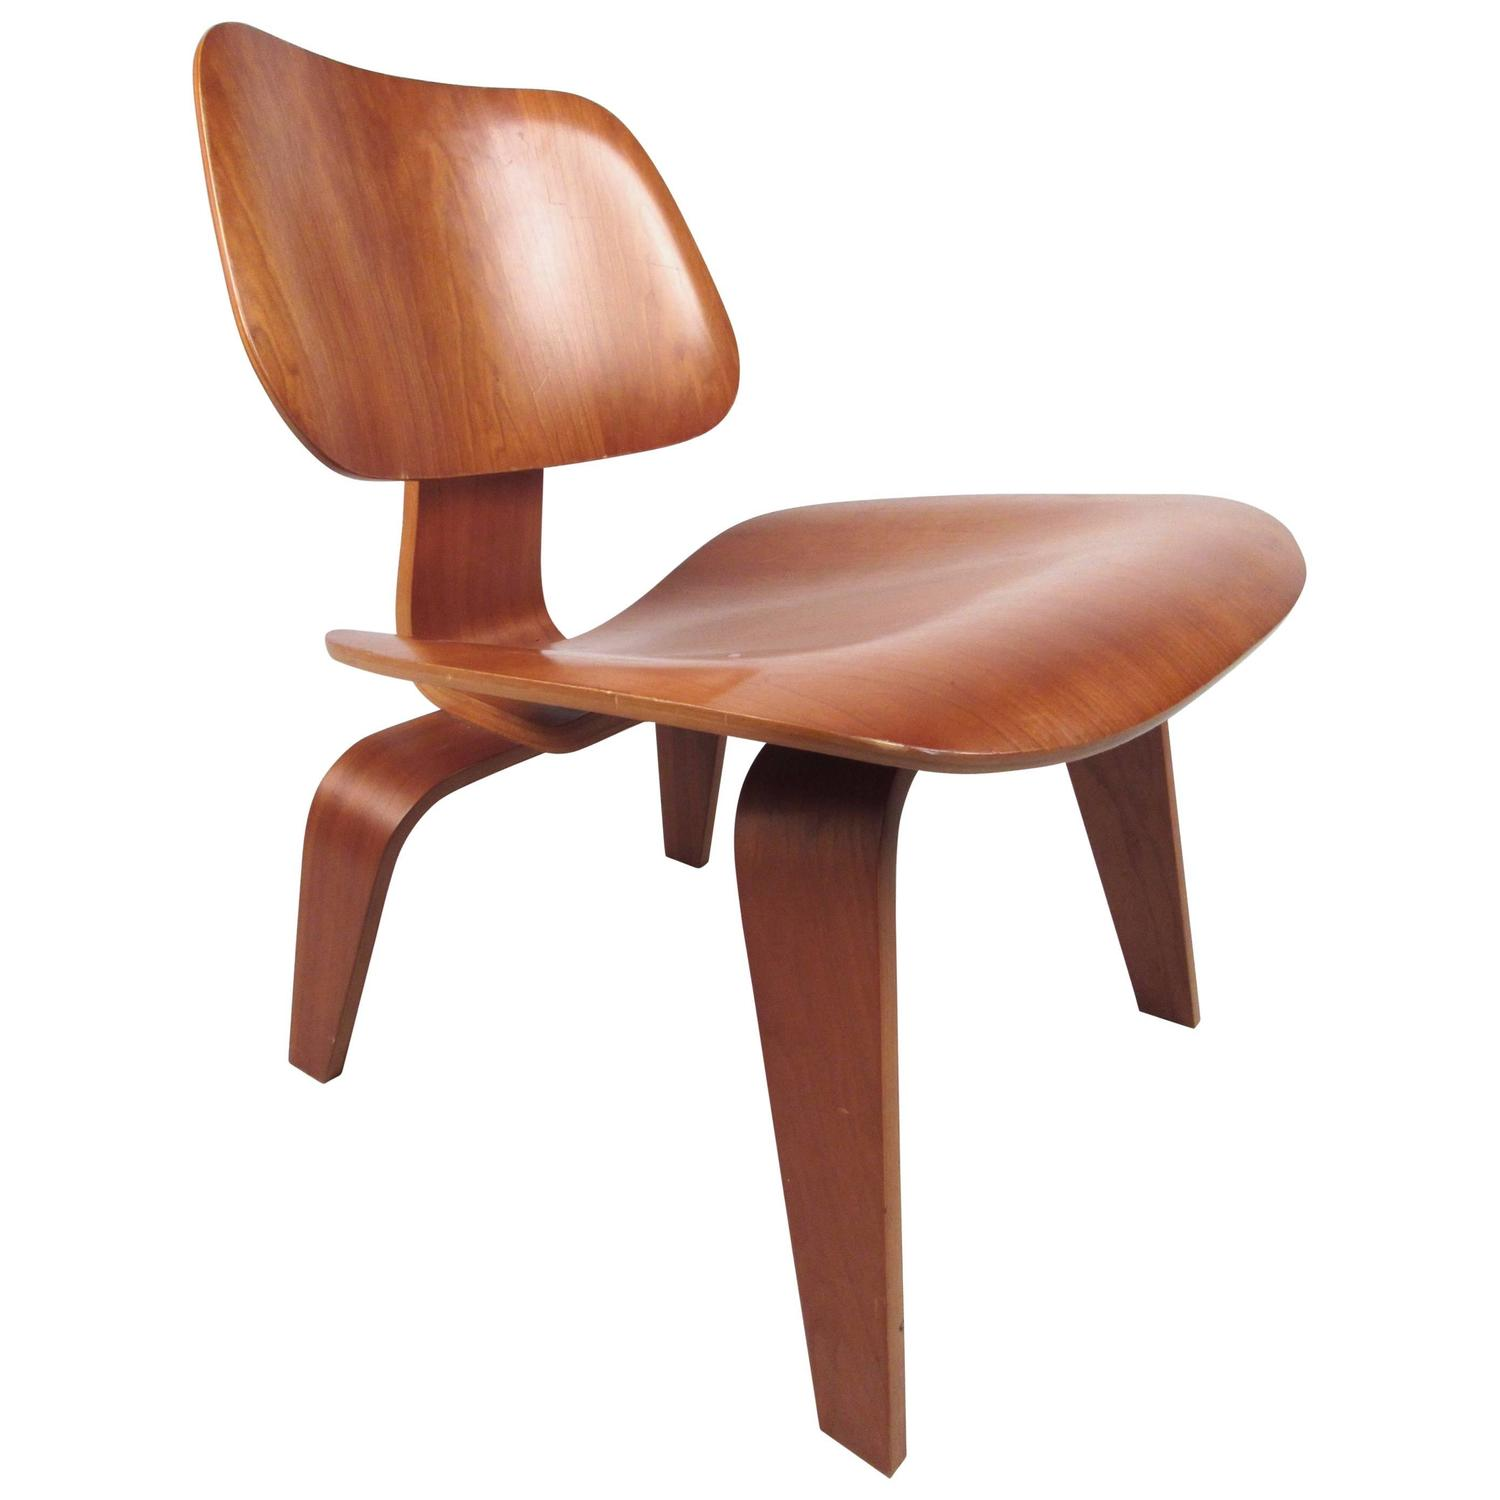 charles eames evans bent plywood herman miller dining chair  - charles eames plywood dcw side chair for herman miller